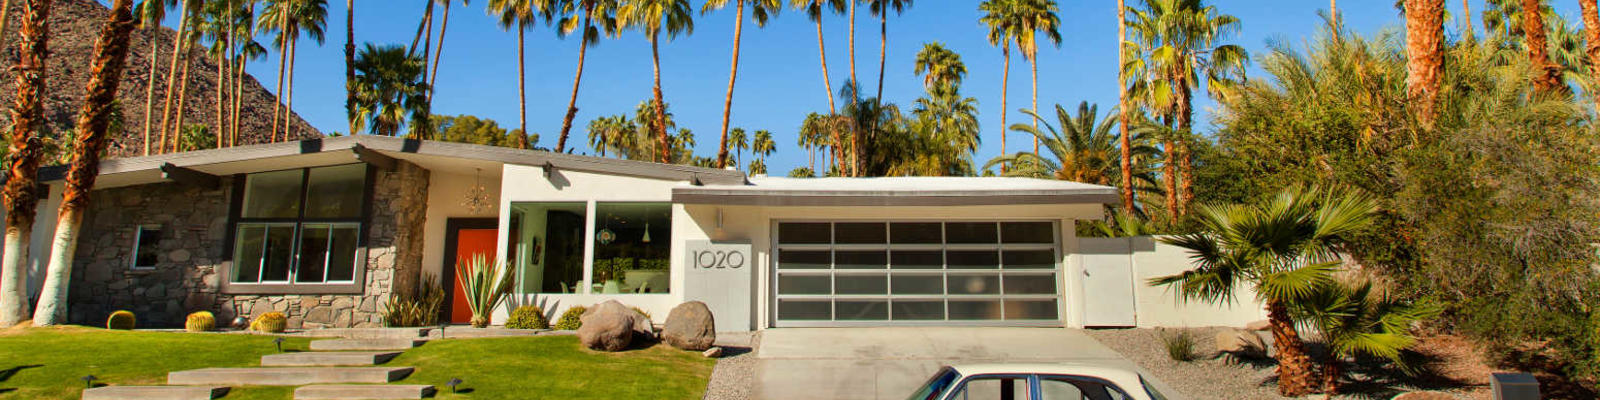 mid-century modern house palm springs